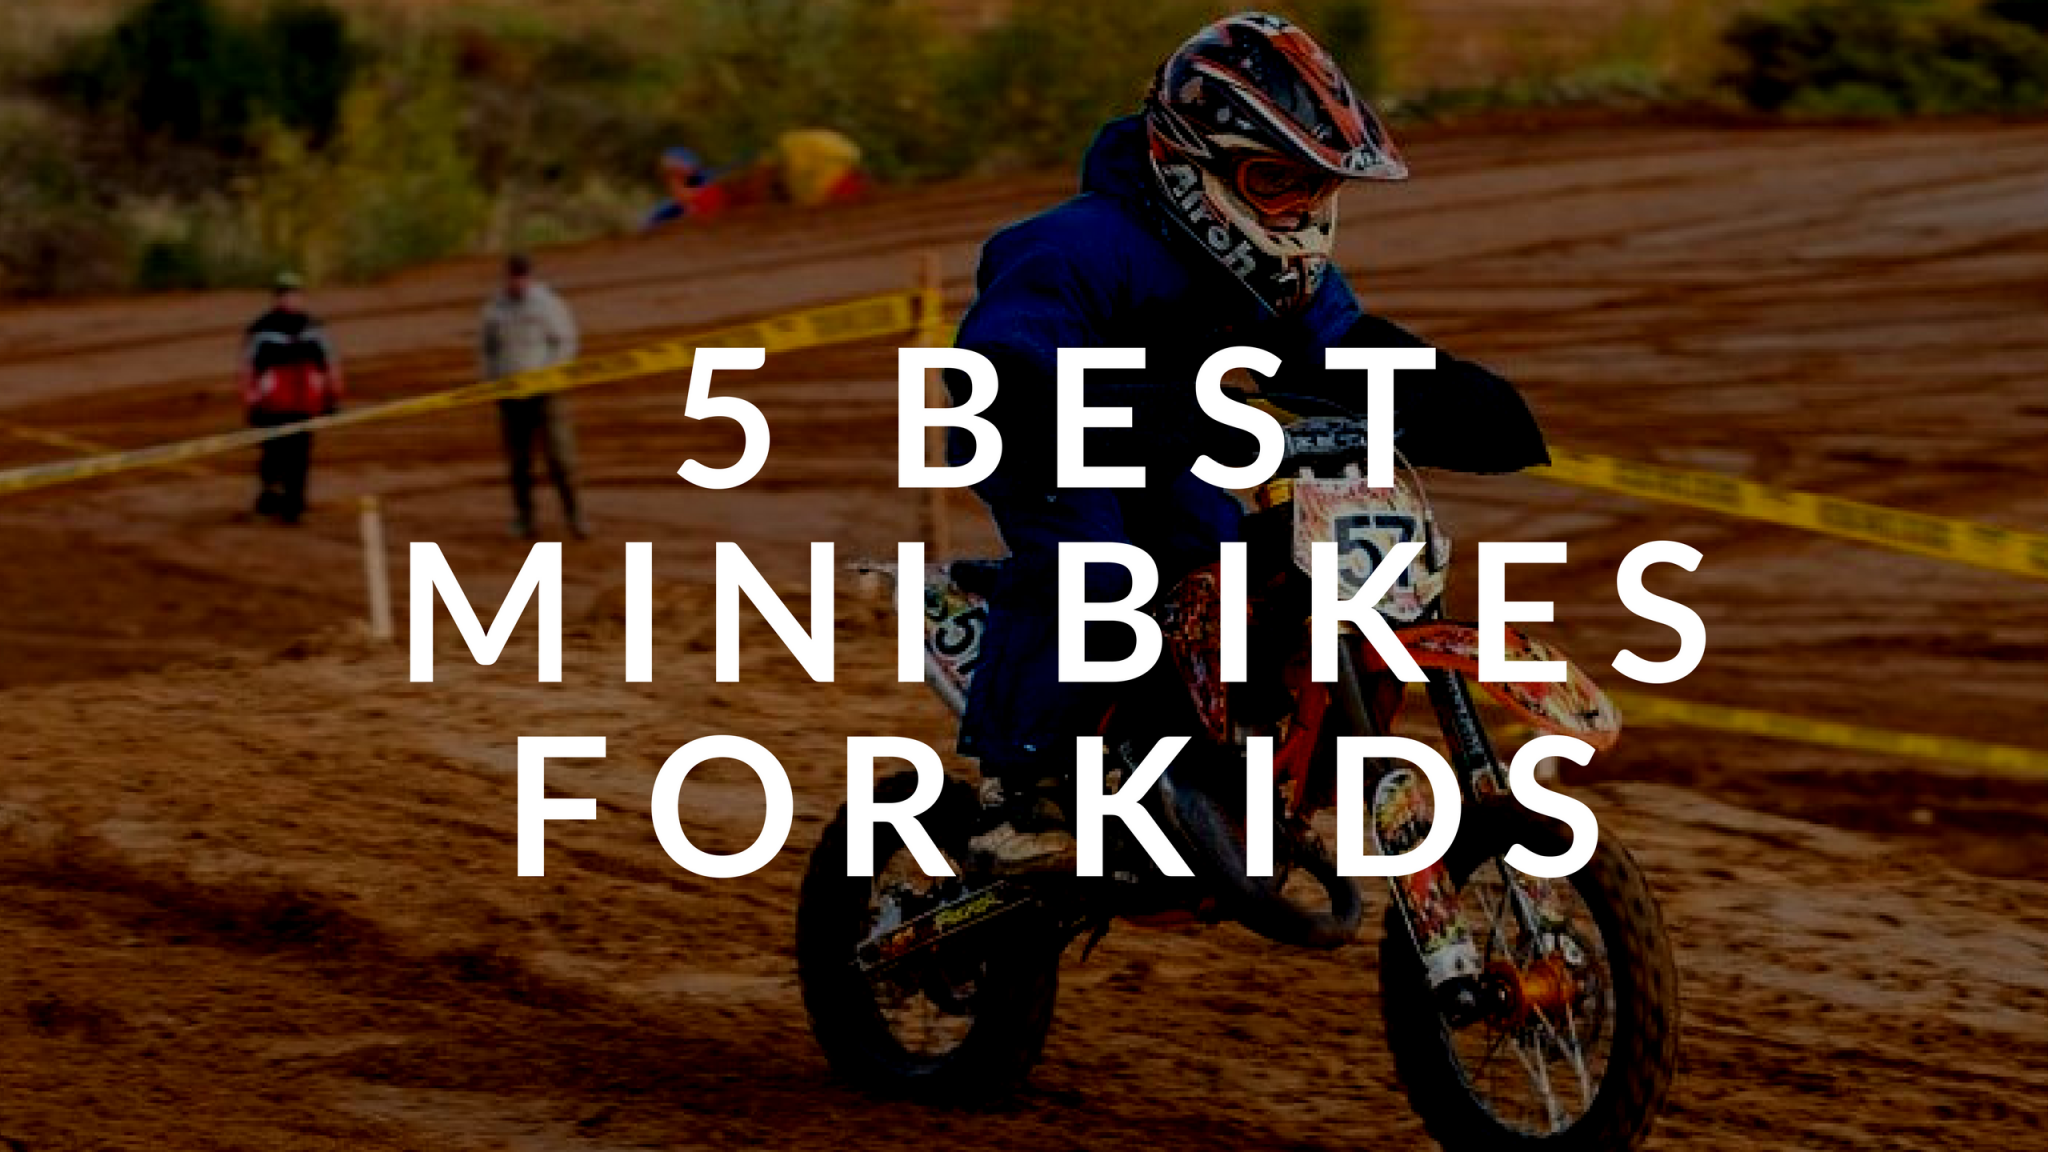 5 Best Mini Bikes For Kids